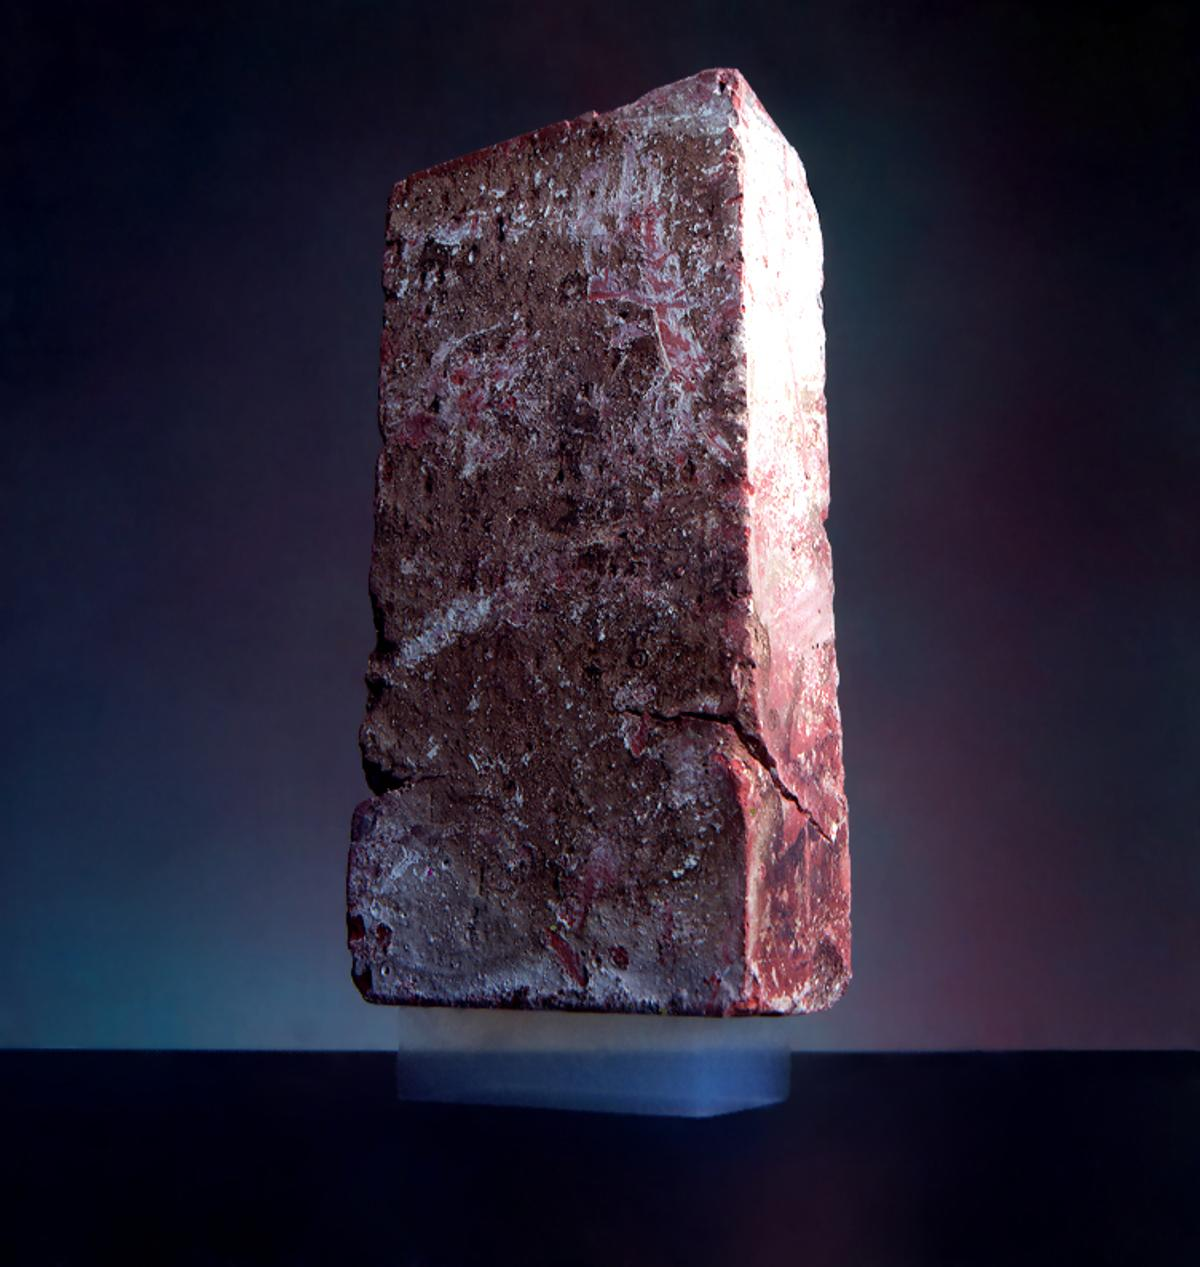 A 2.5 kg brick is supported by a piece of aerogel with a mass of only 2 grams